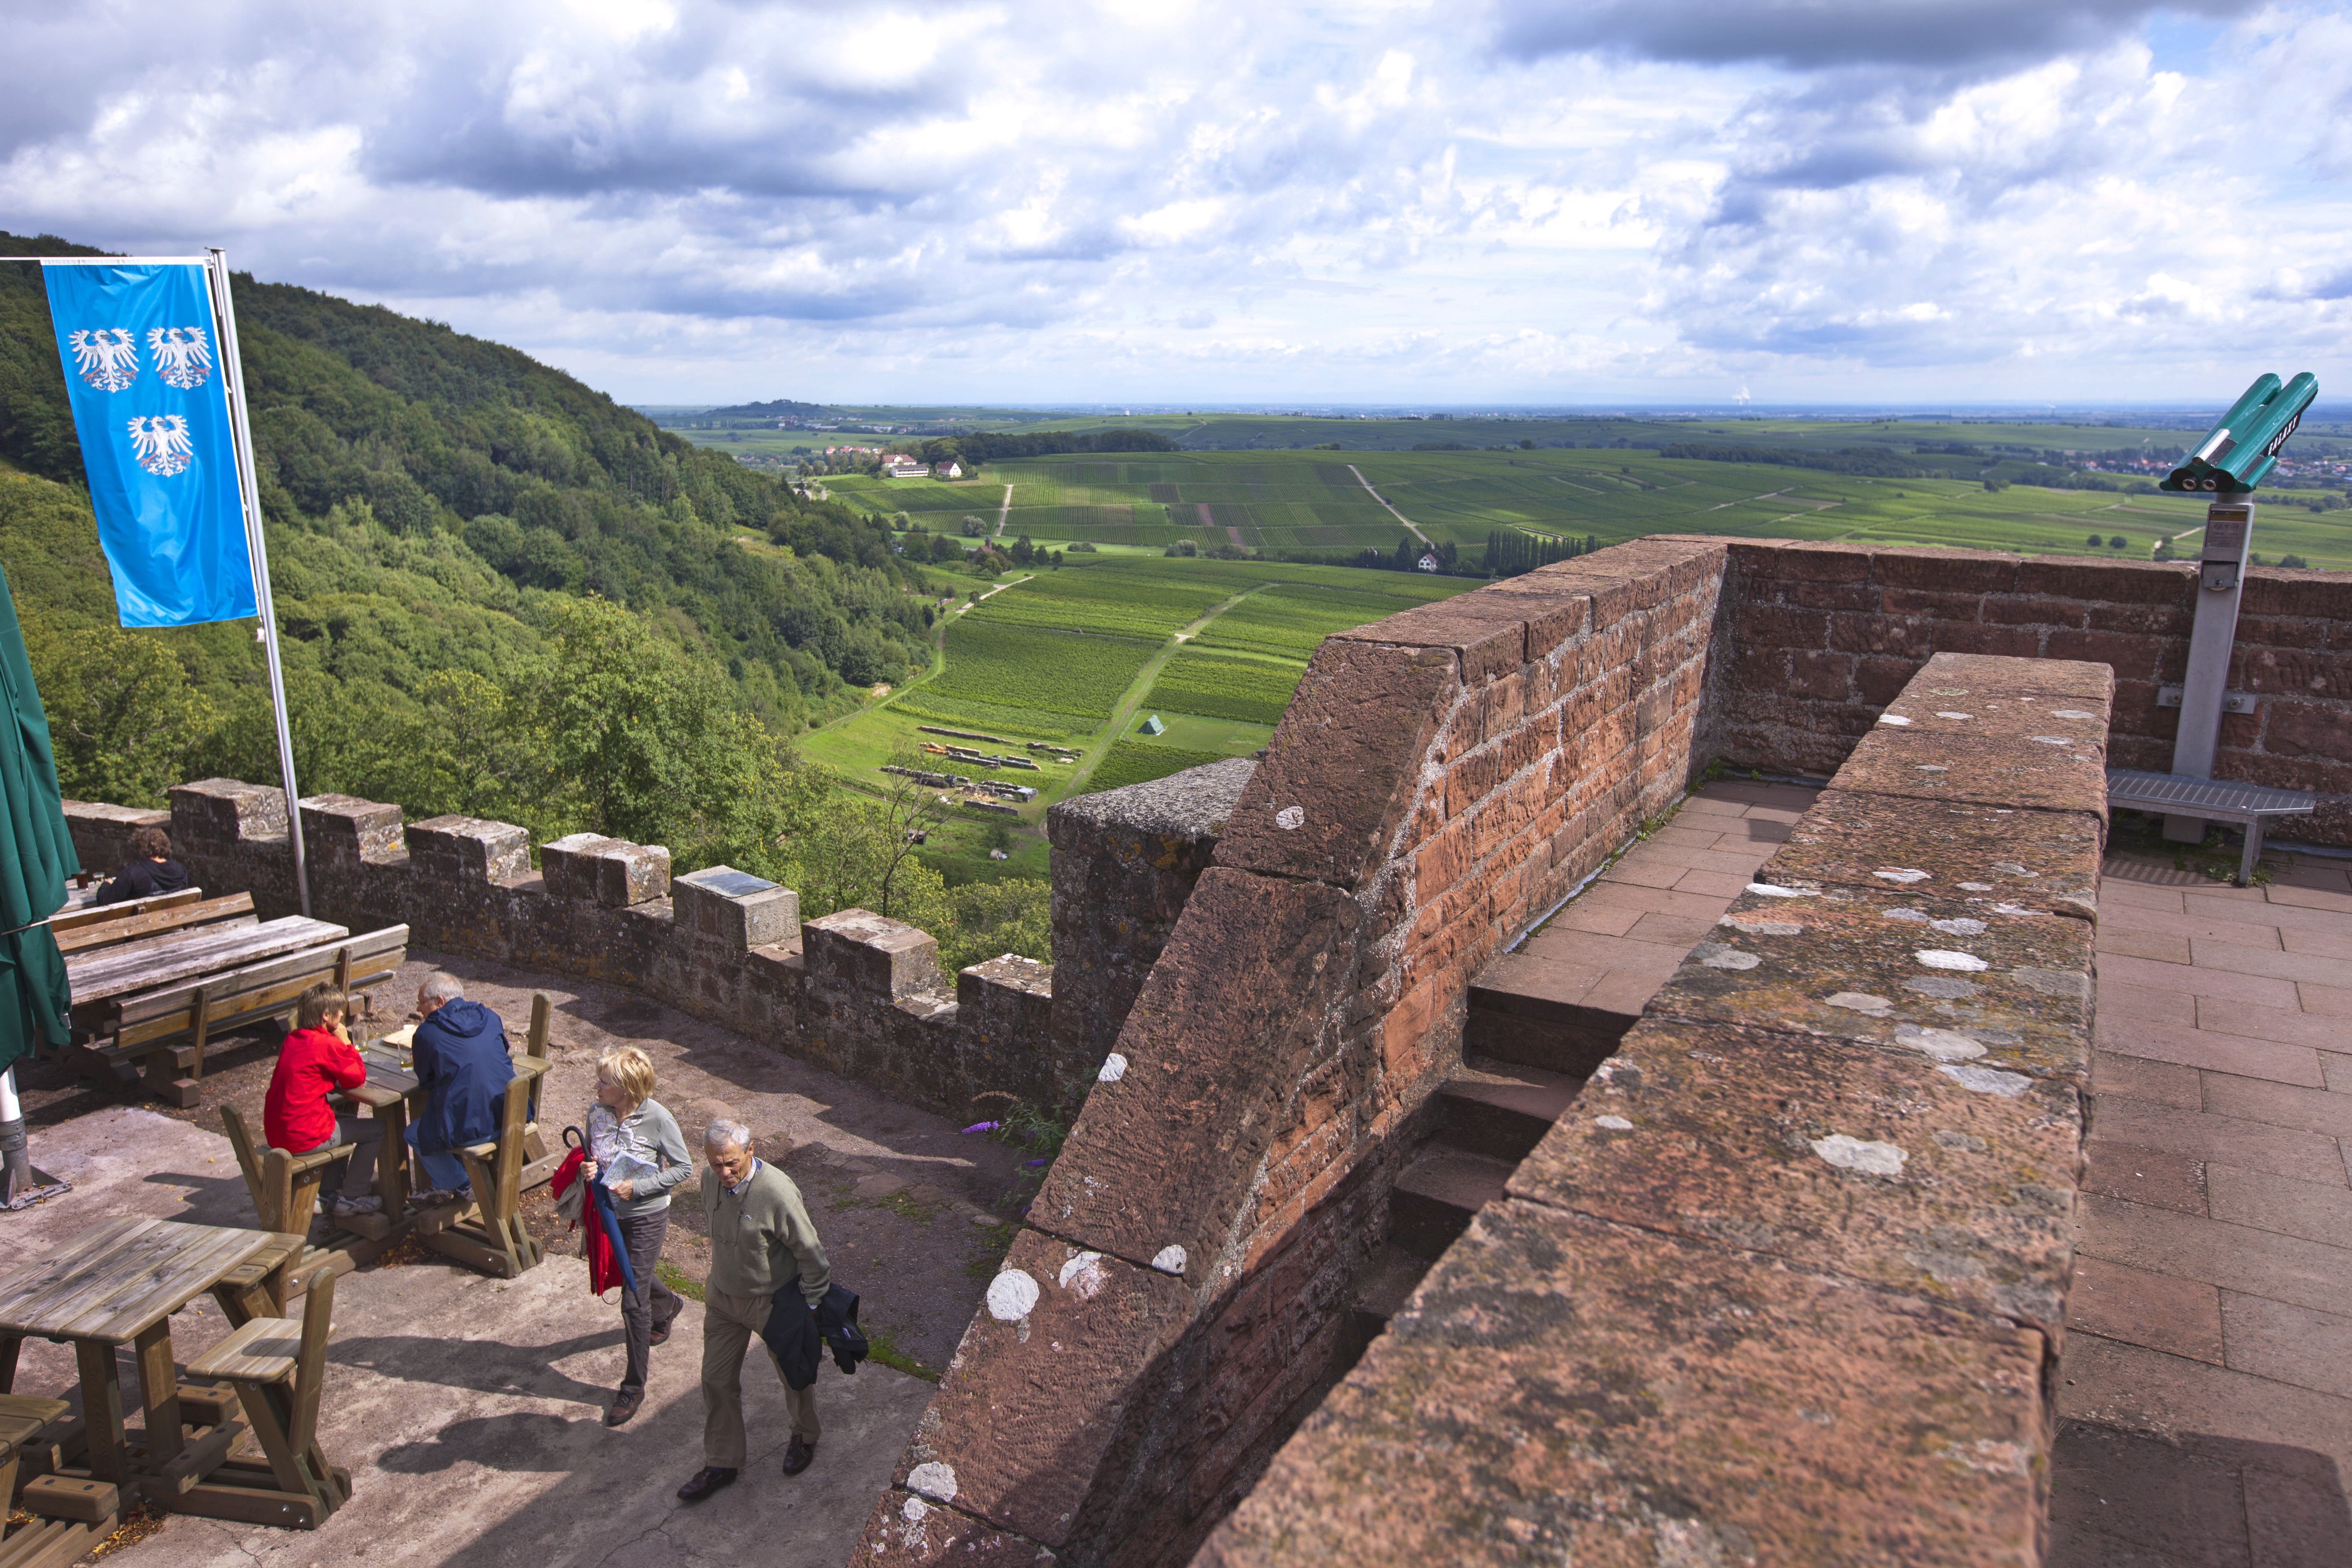 tourists at wooden tables overlooking the green valley beyond the castle walls